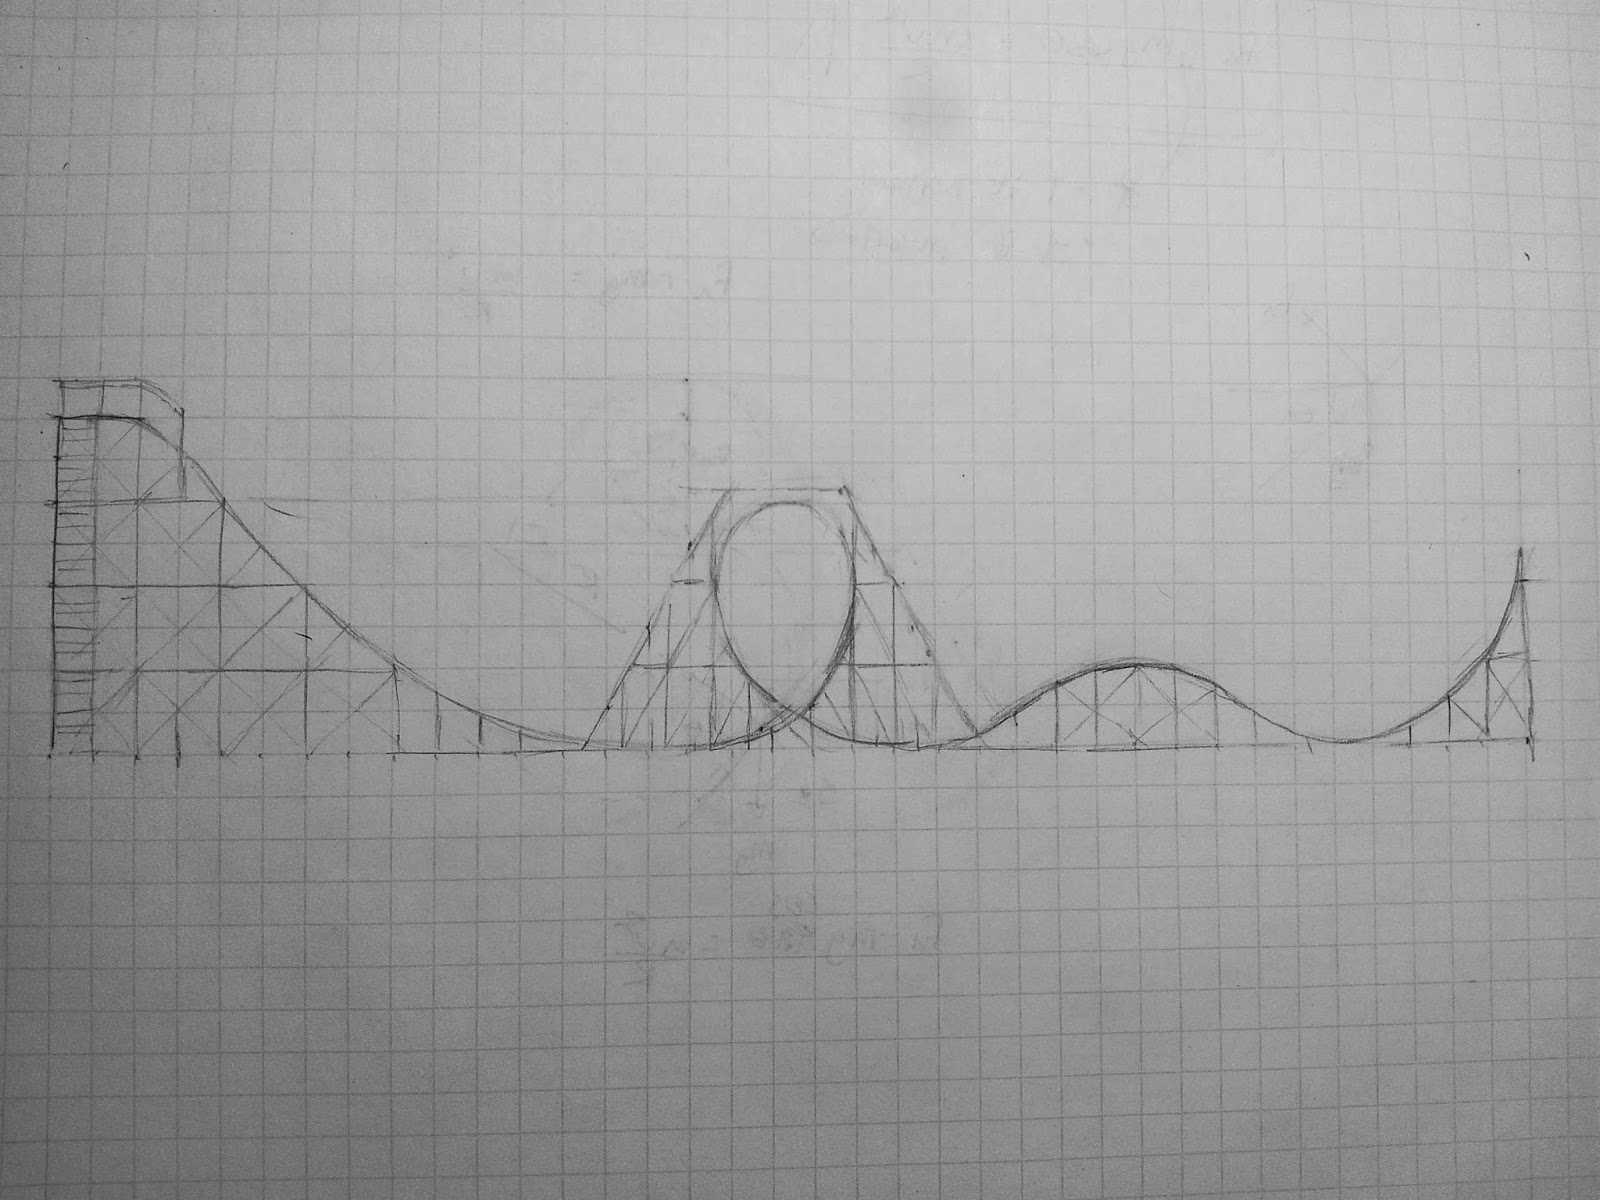 buildits in progress roller coaster track design